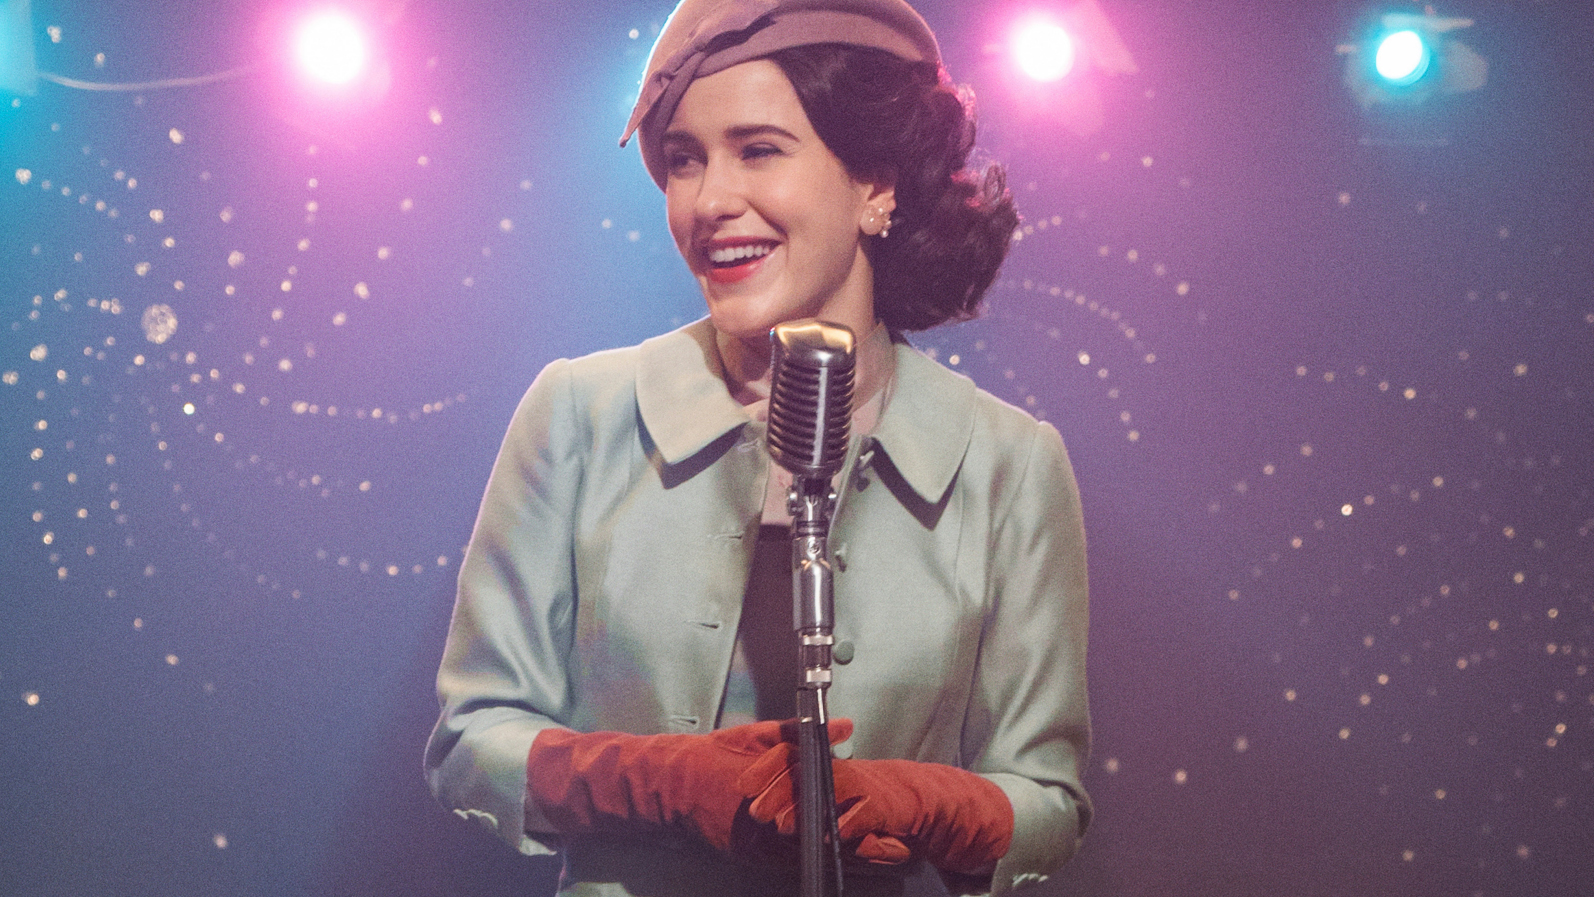 Westlake Legal Group mrs-maisel Rachel Brosnahan says 'Marvelous Mrs. Maisel' costumes caused 'corset-related injury' Nate Day fox-news/entertainment/tv fox-news/entertainment/genres/late-night fox-news/entertainment/celebrity-news fox-news/entertainment fox news fnc/entertainment fnc article 99a5334f-486c-5be0-a7fa-9b3e52d5669b